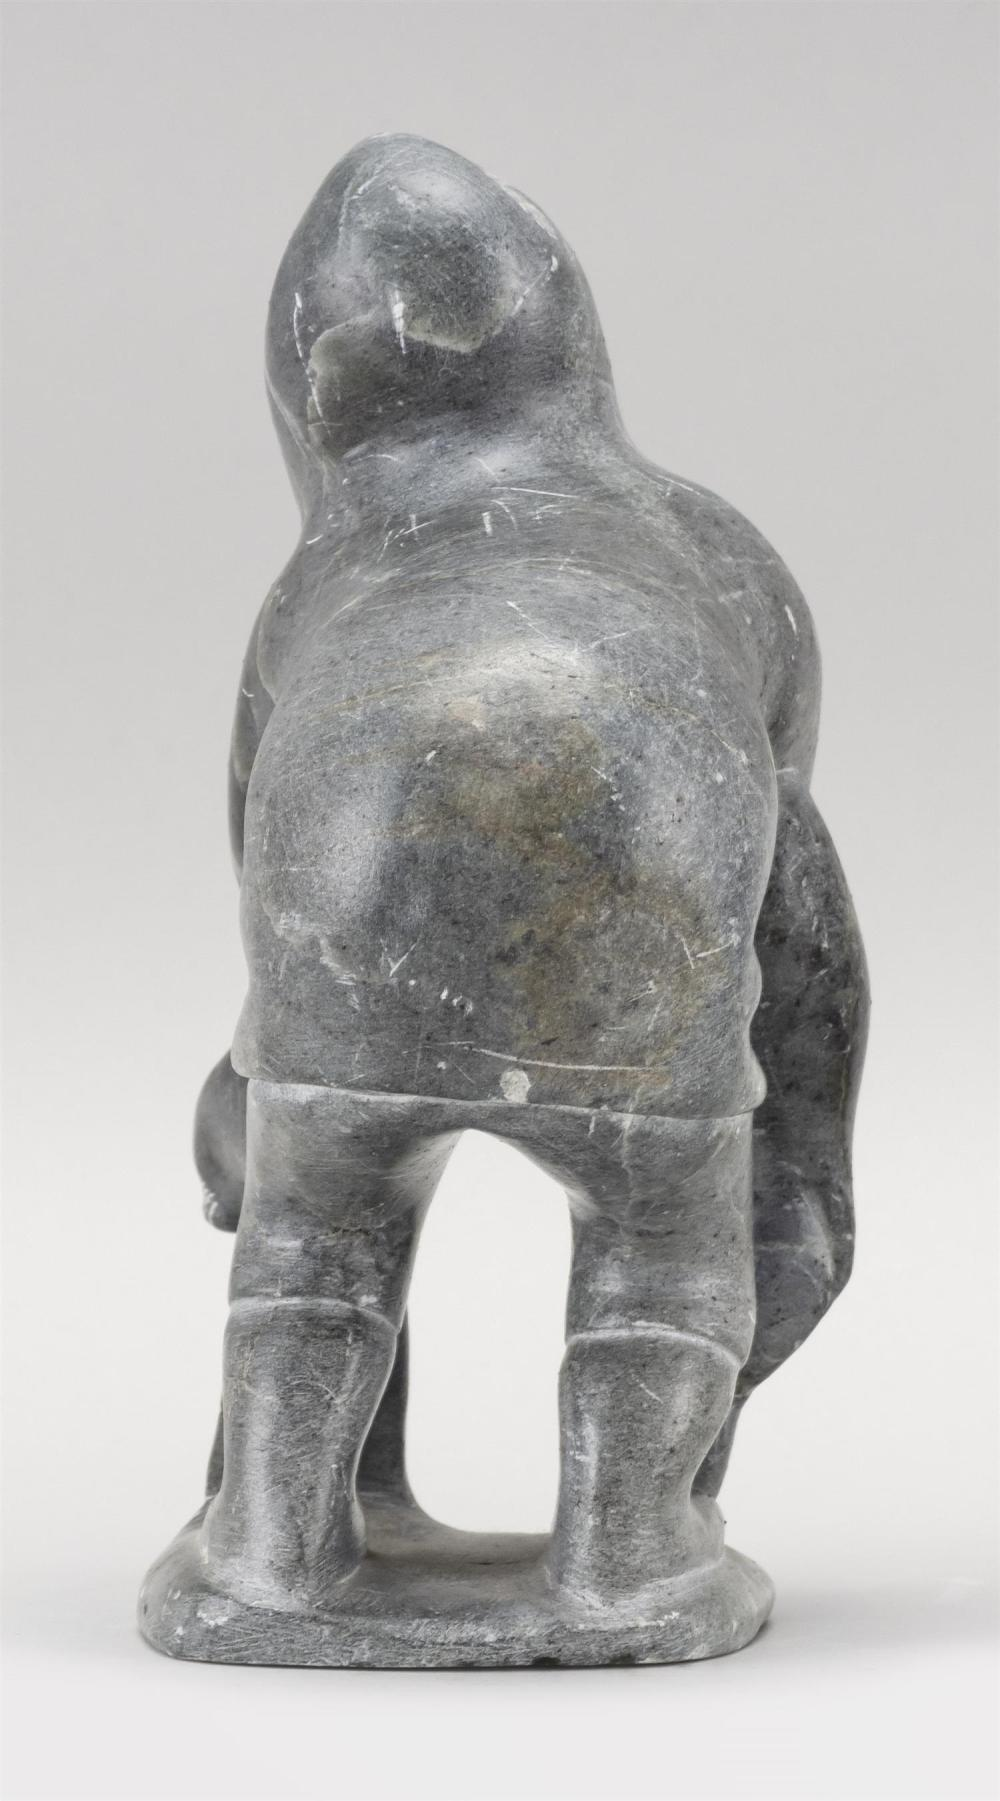 GRAY SOAPSTONE FIGURE OF AN ESKIMO WITH MYTHOLOGICAL SEAL Label on underside marked